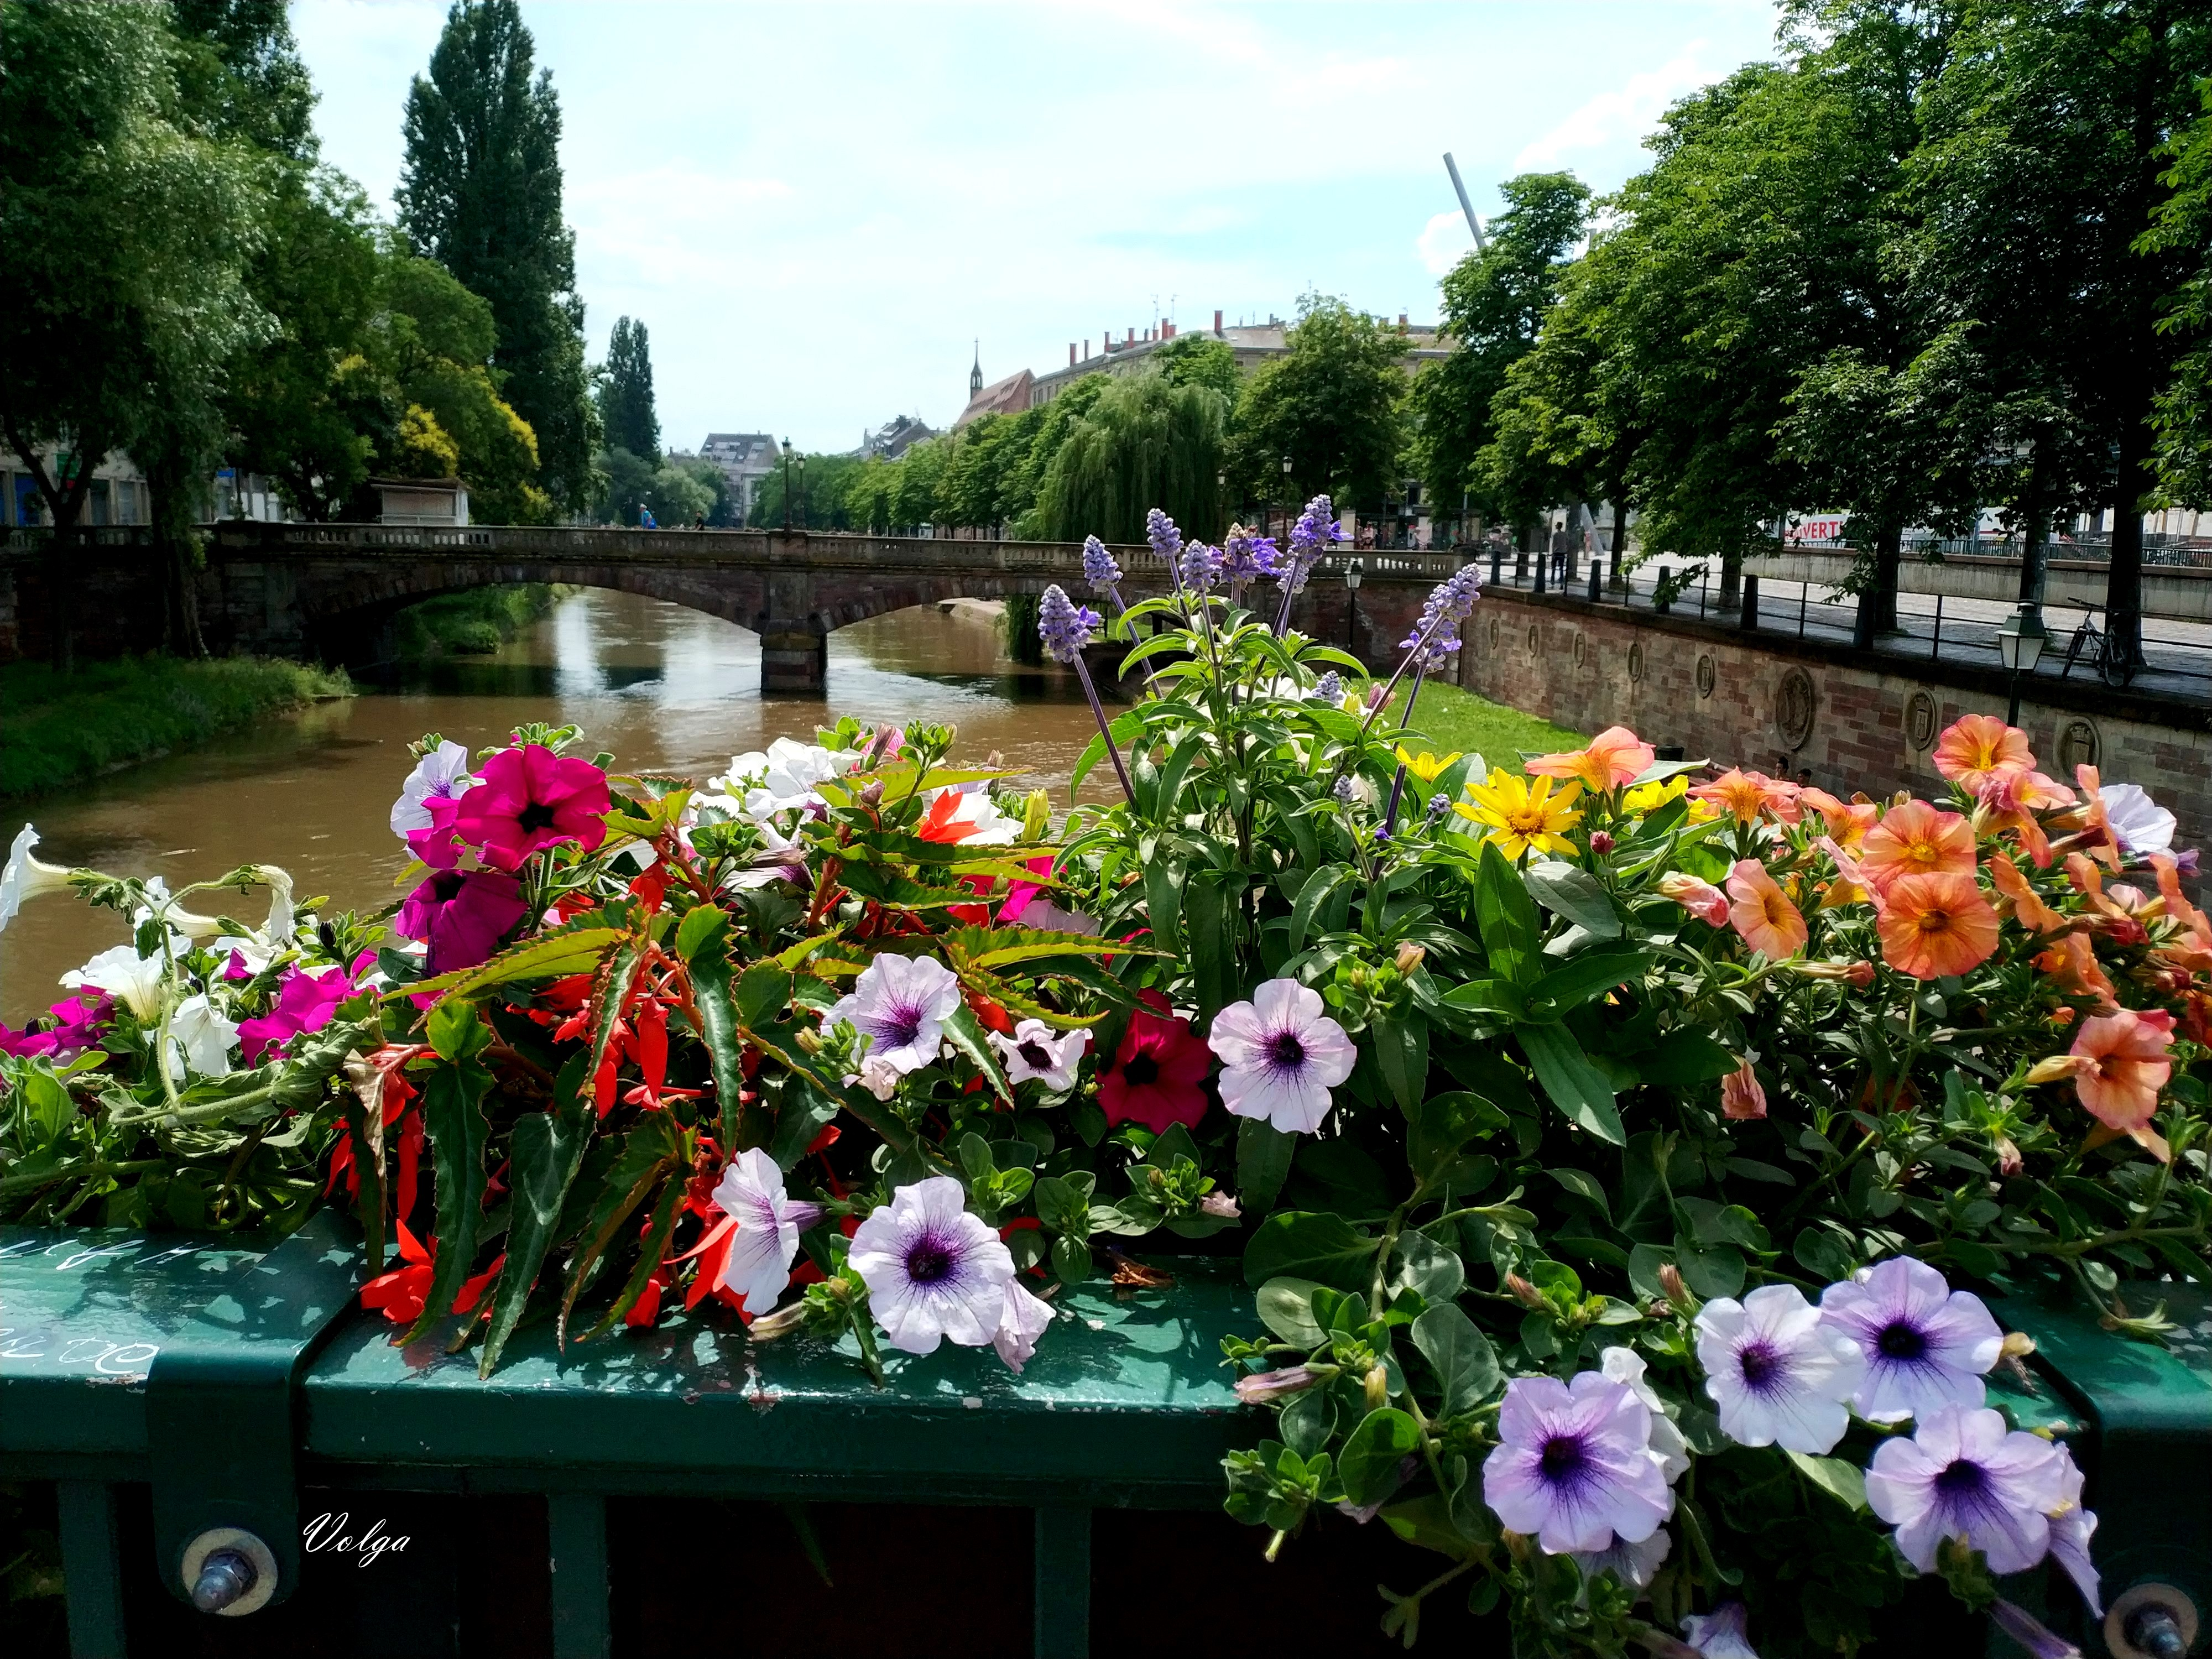 Flowers and river